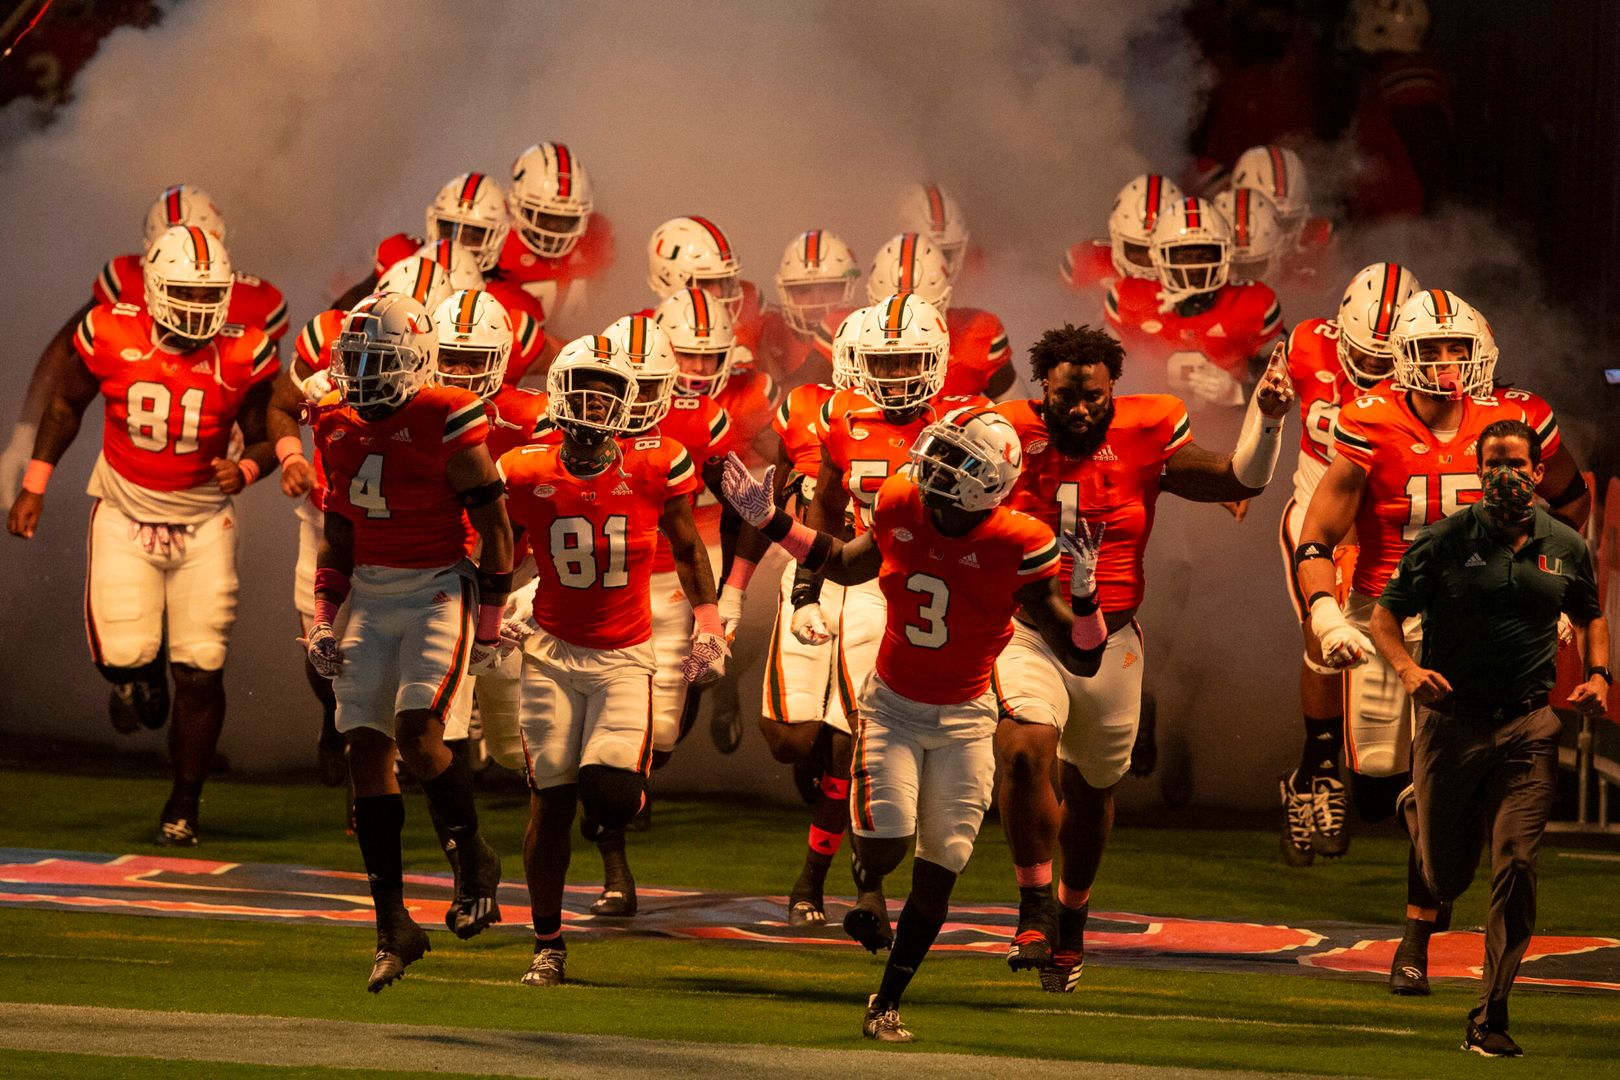 Canes Eager for ACC Test at NC State